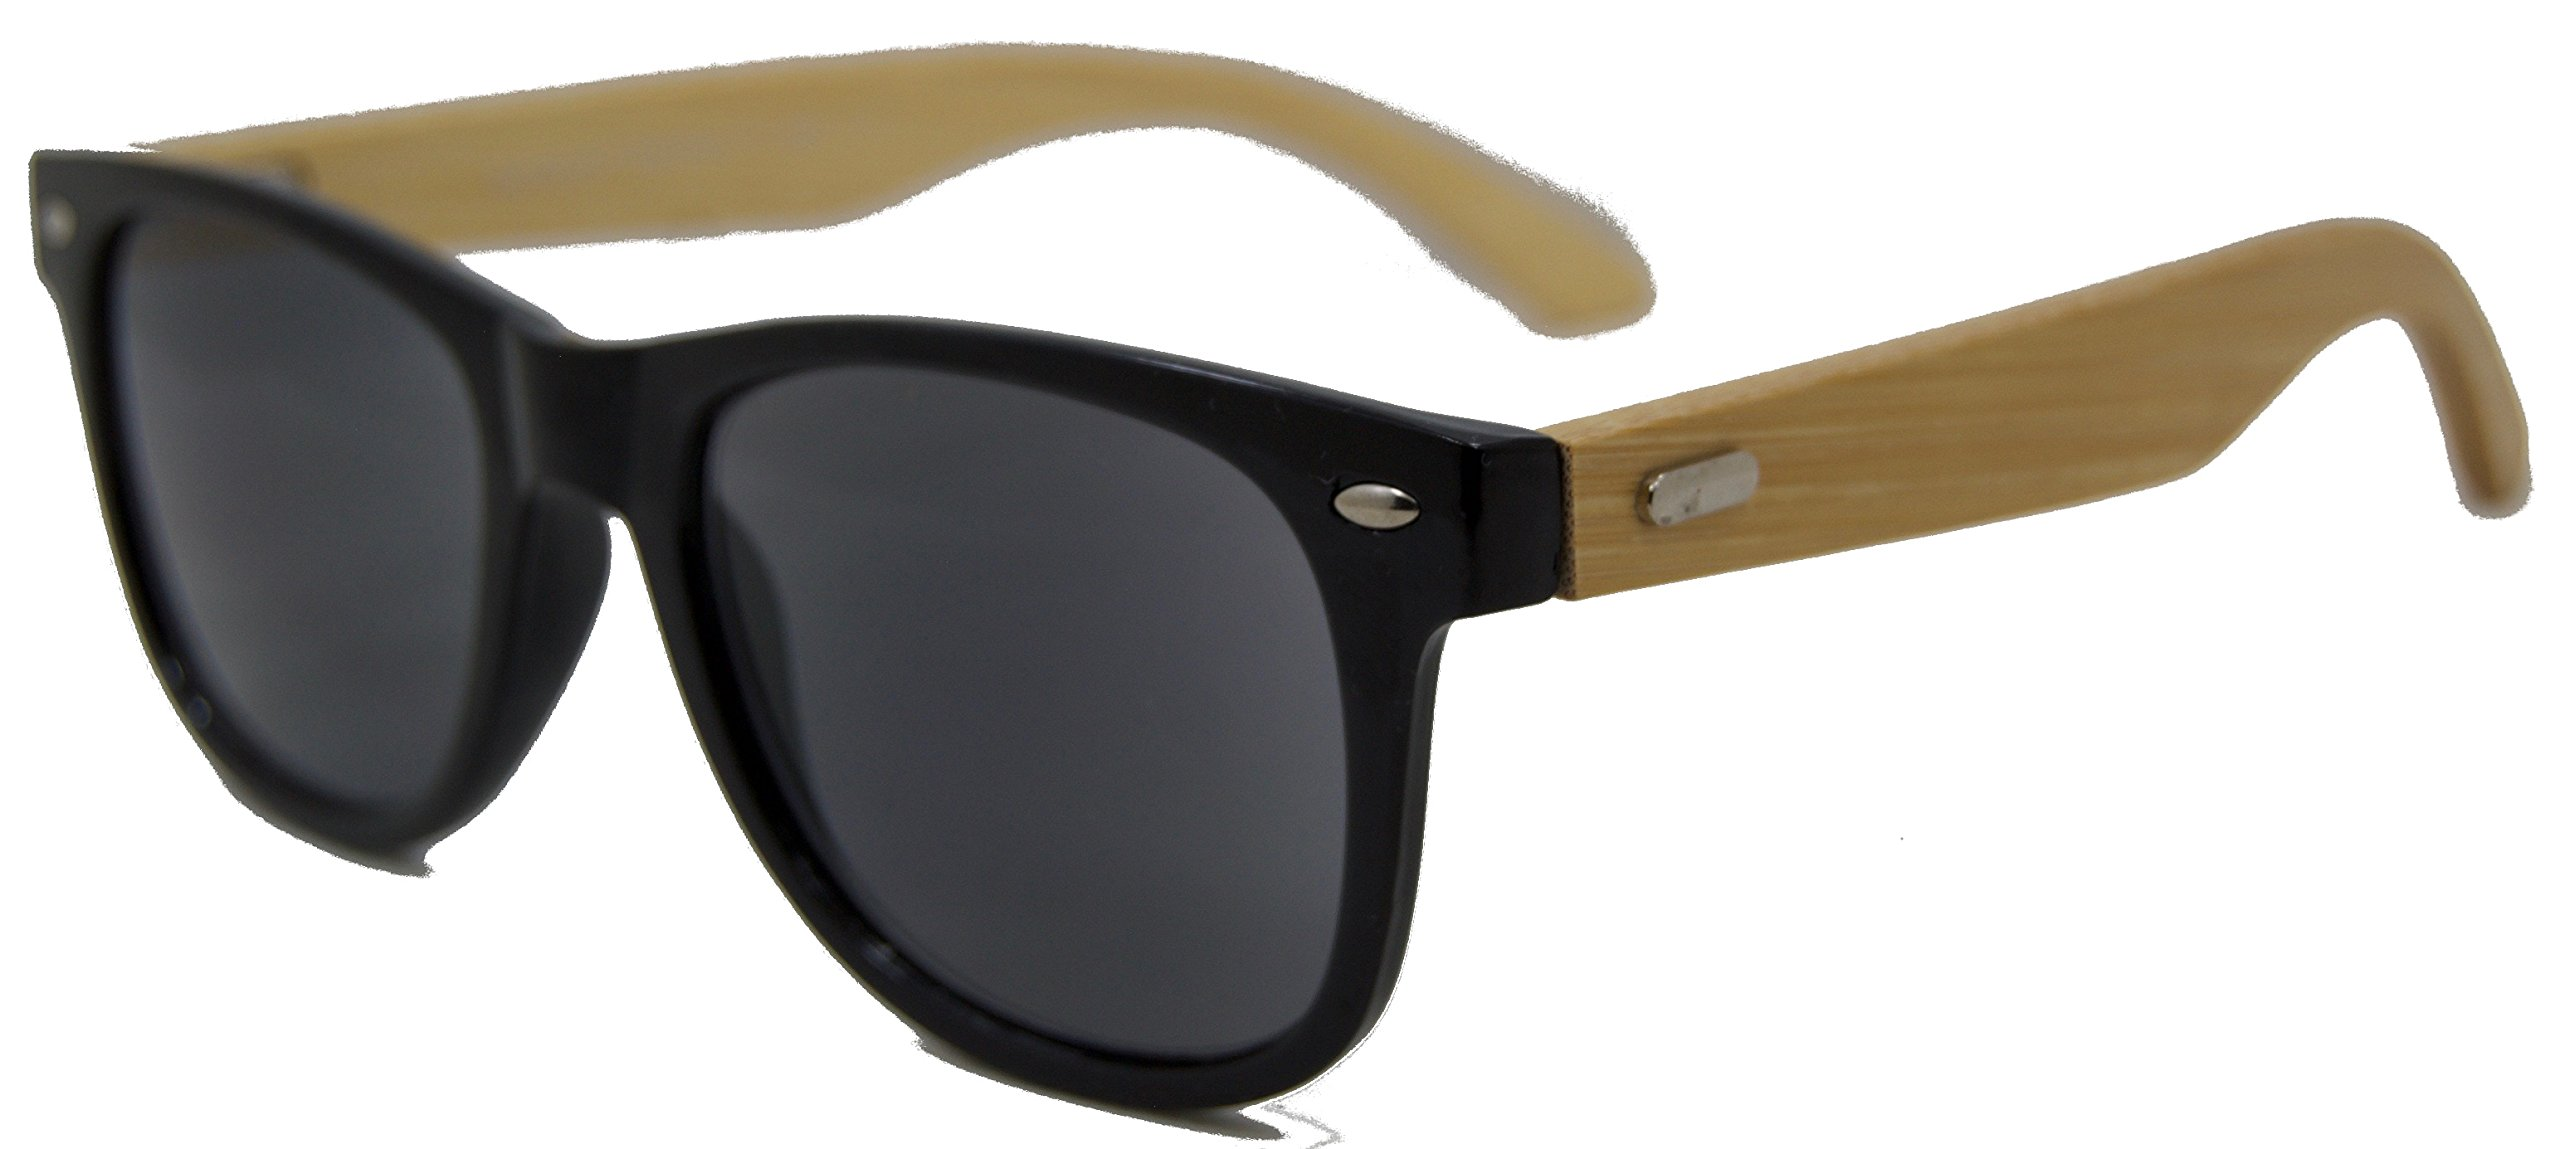 In Style Eyes Woodster, Classic Wayfarer Bamboo Reading Sunglasses/Black/2.75 by In Style Eyes